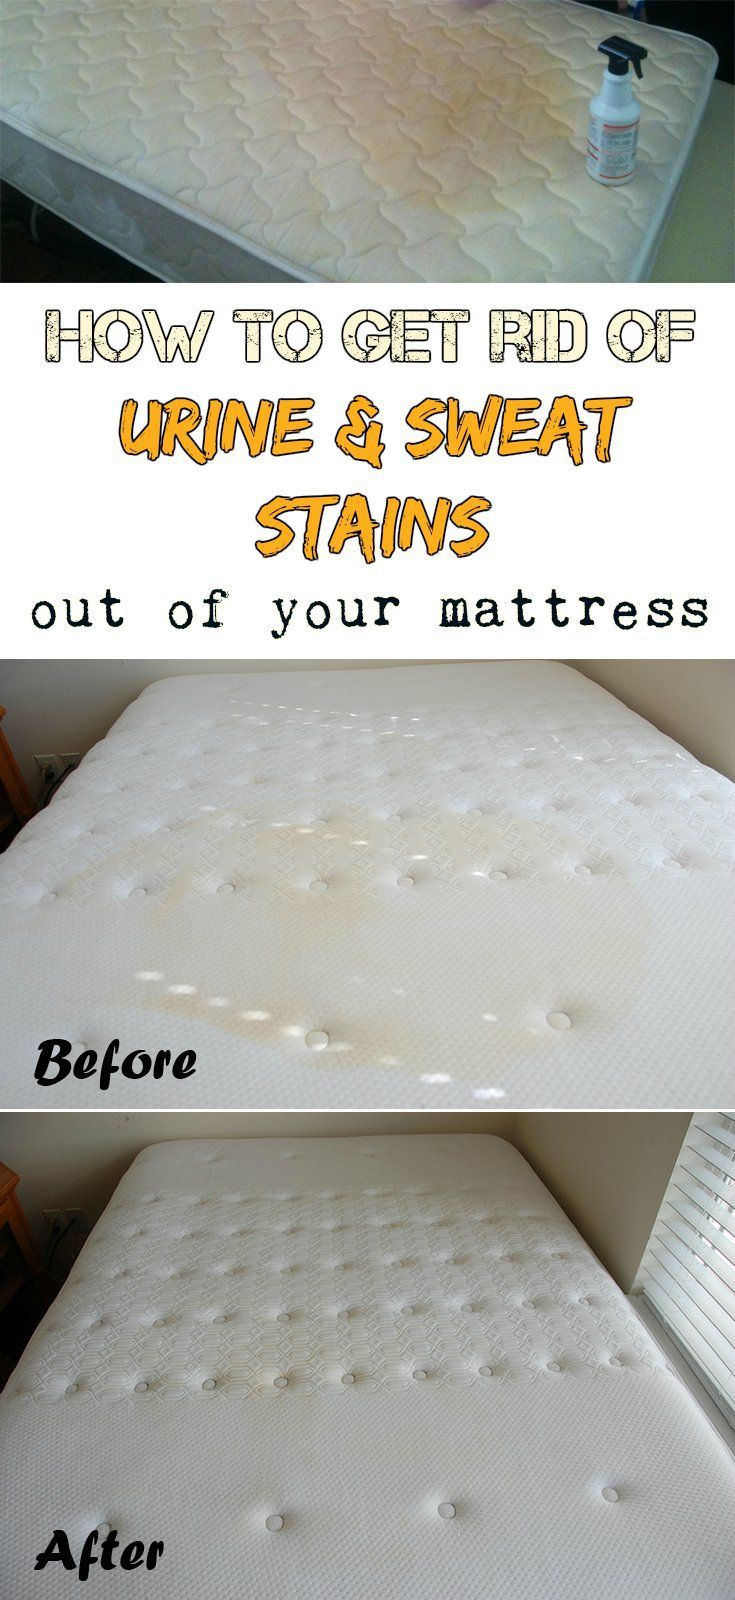 Learn how to get stains out with these 19 tips and tricks. No more tossing out items and money. You can finally extend the life of your household items.